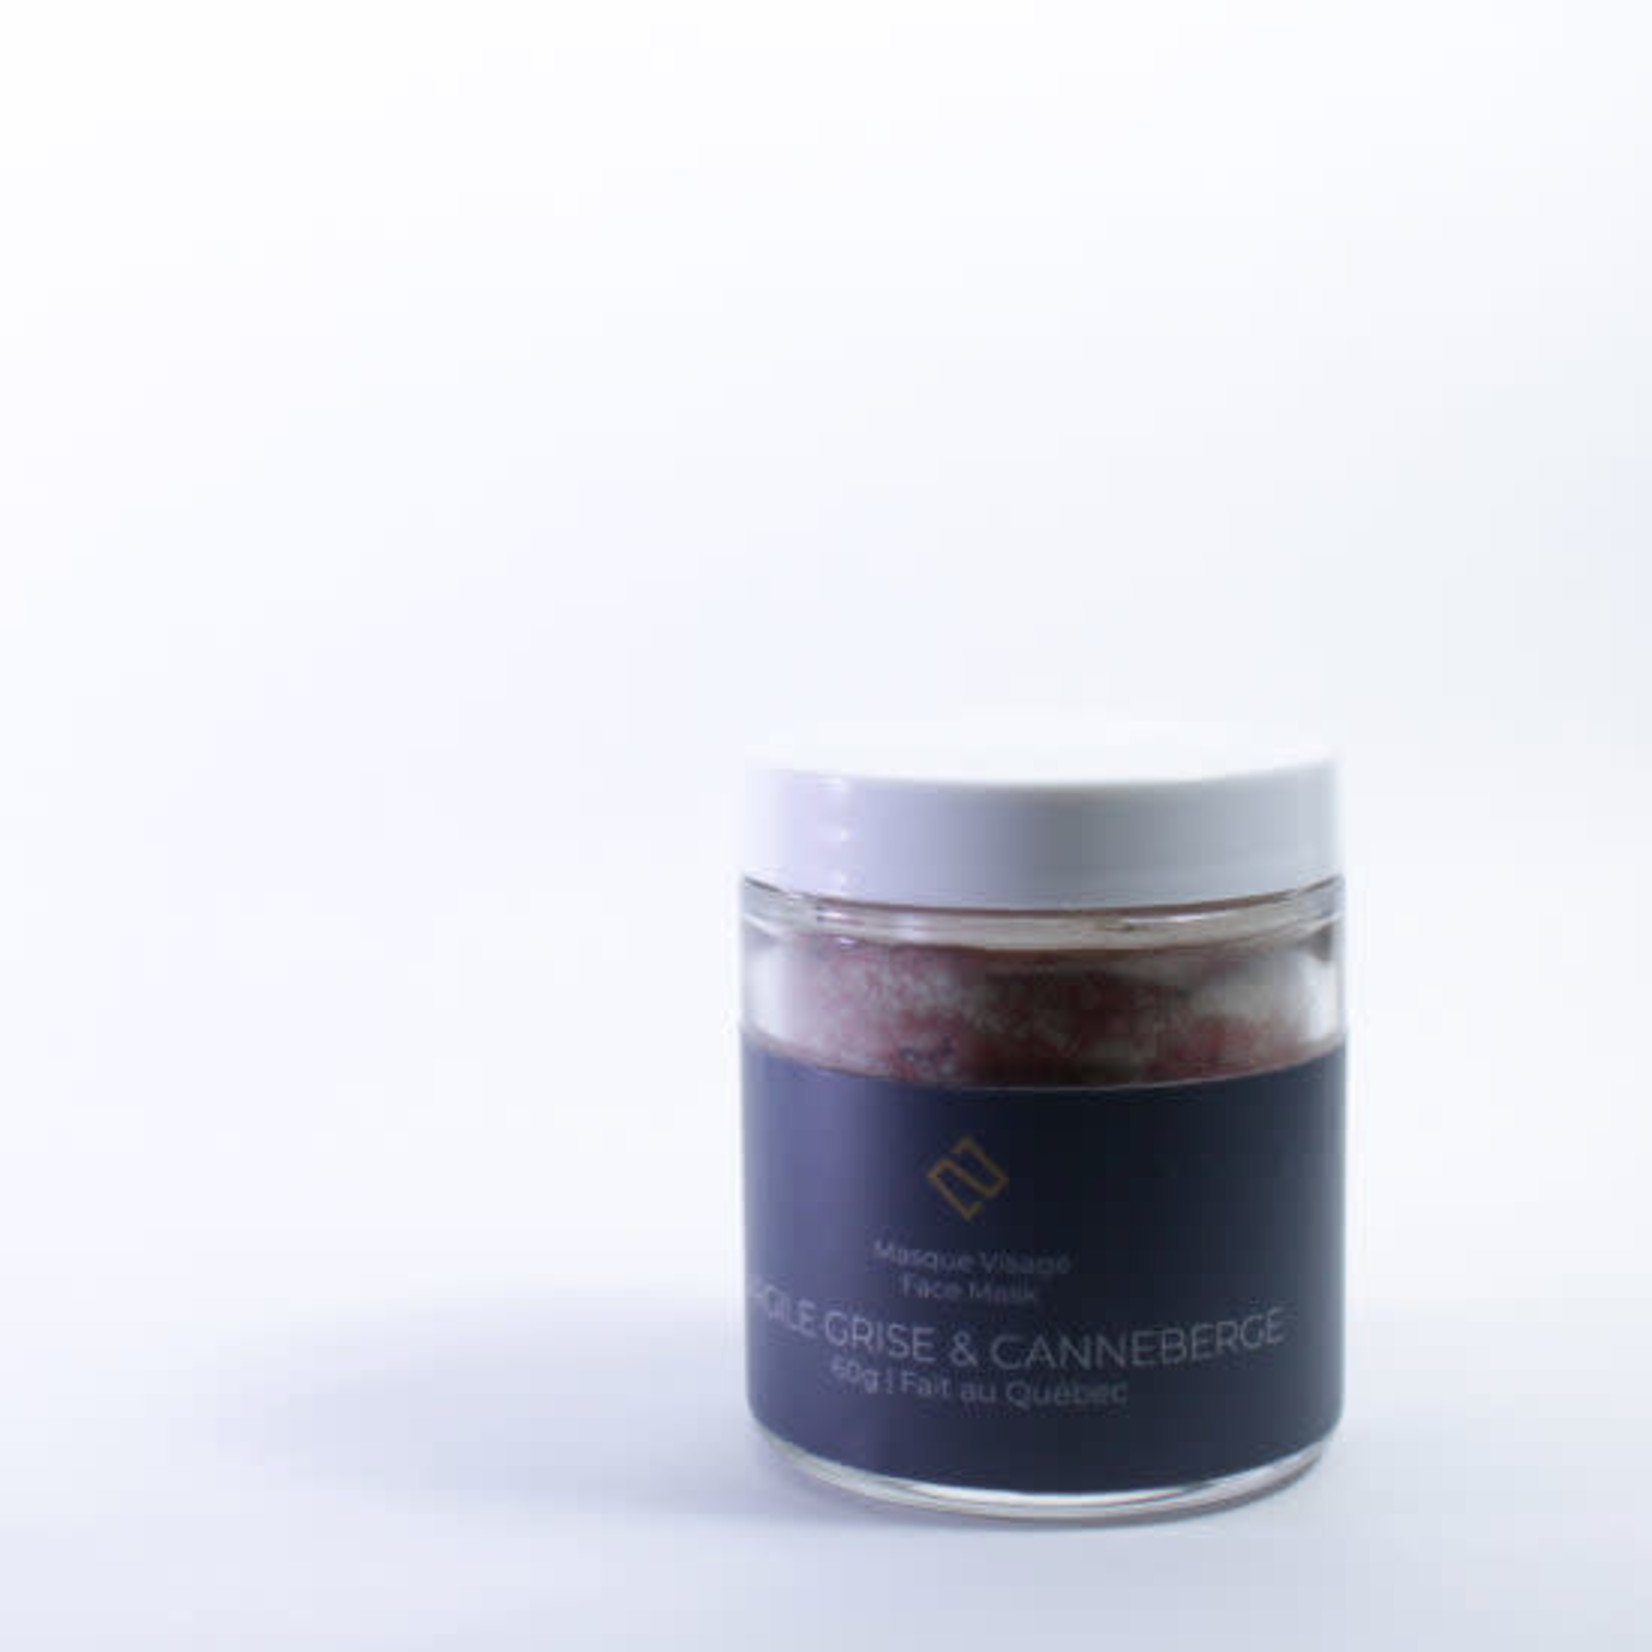 Deux cosmetiques GRAY CLAY AND CRANBERRY MASK